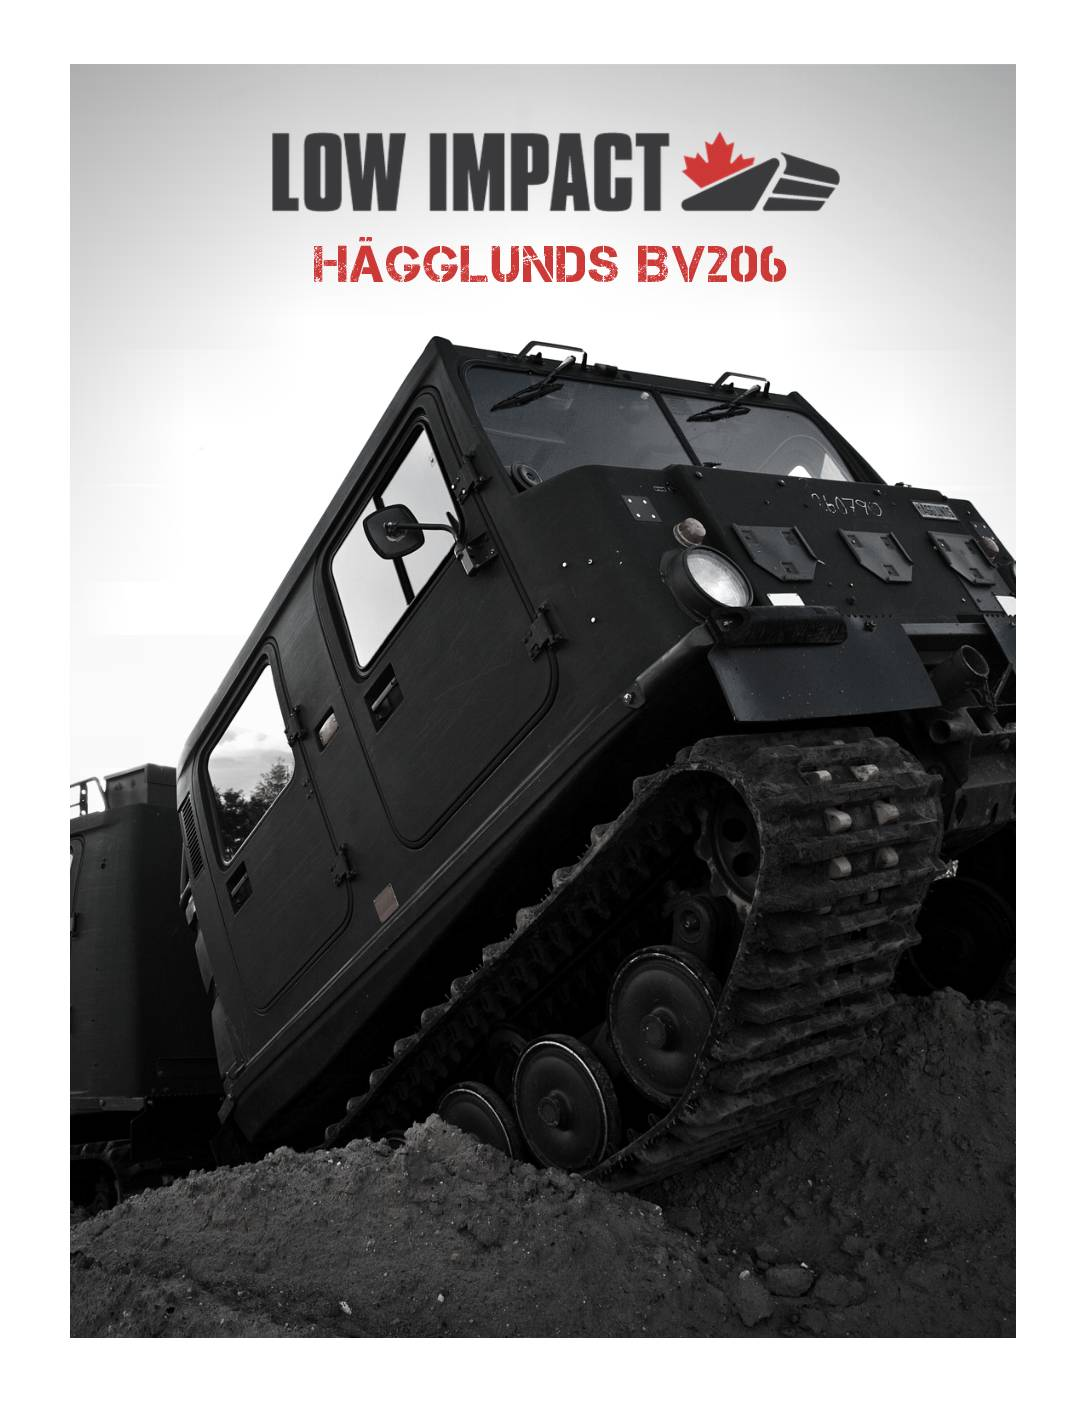 Low Impact Hagglunds BV206 Brochure